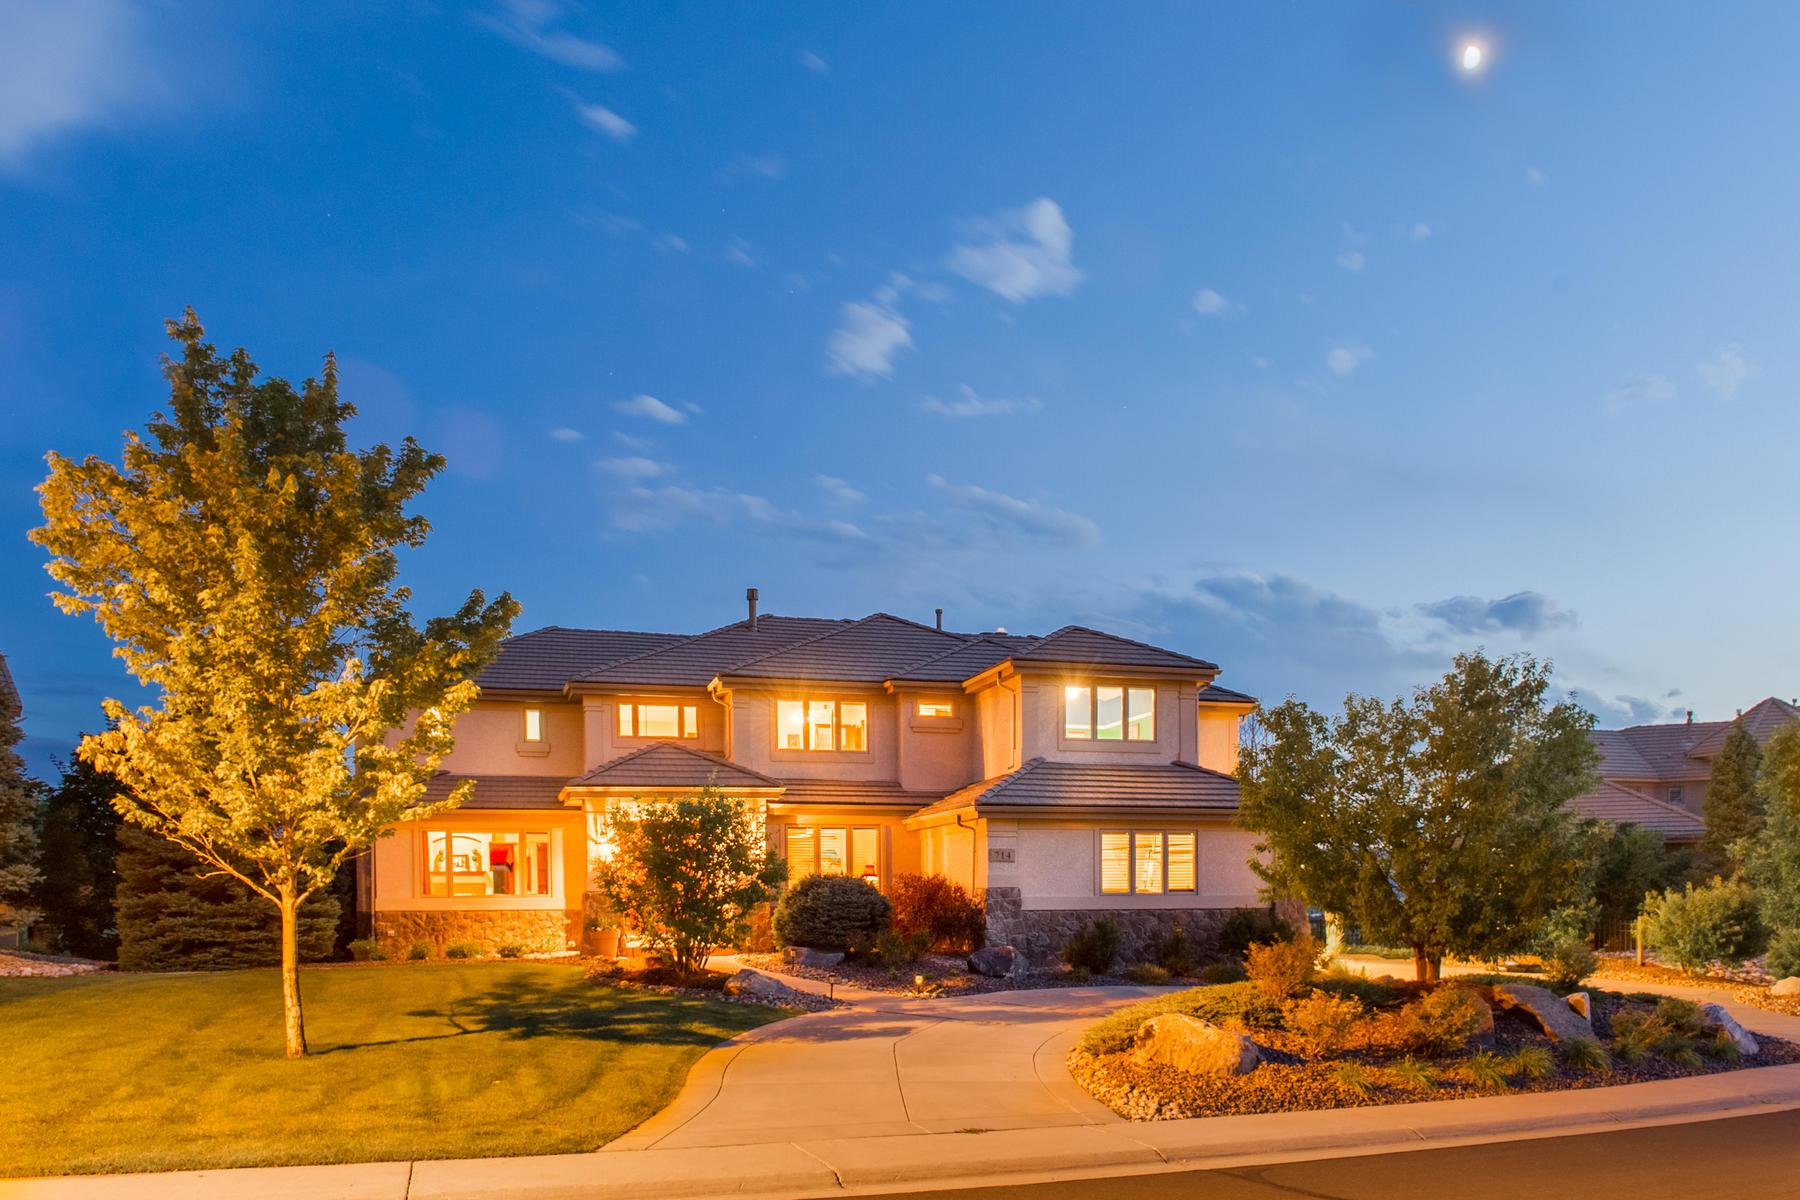 Single Family Home for Active at Fall in love with this mountain contemporary custom home 714 Chamberlain Way Highlands Ranch, Colorado 80126 United States